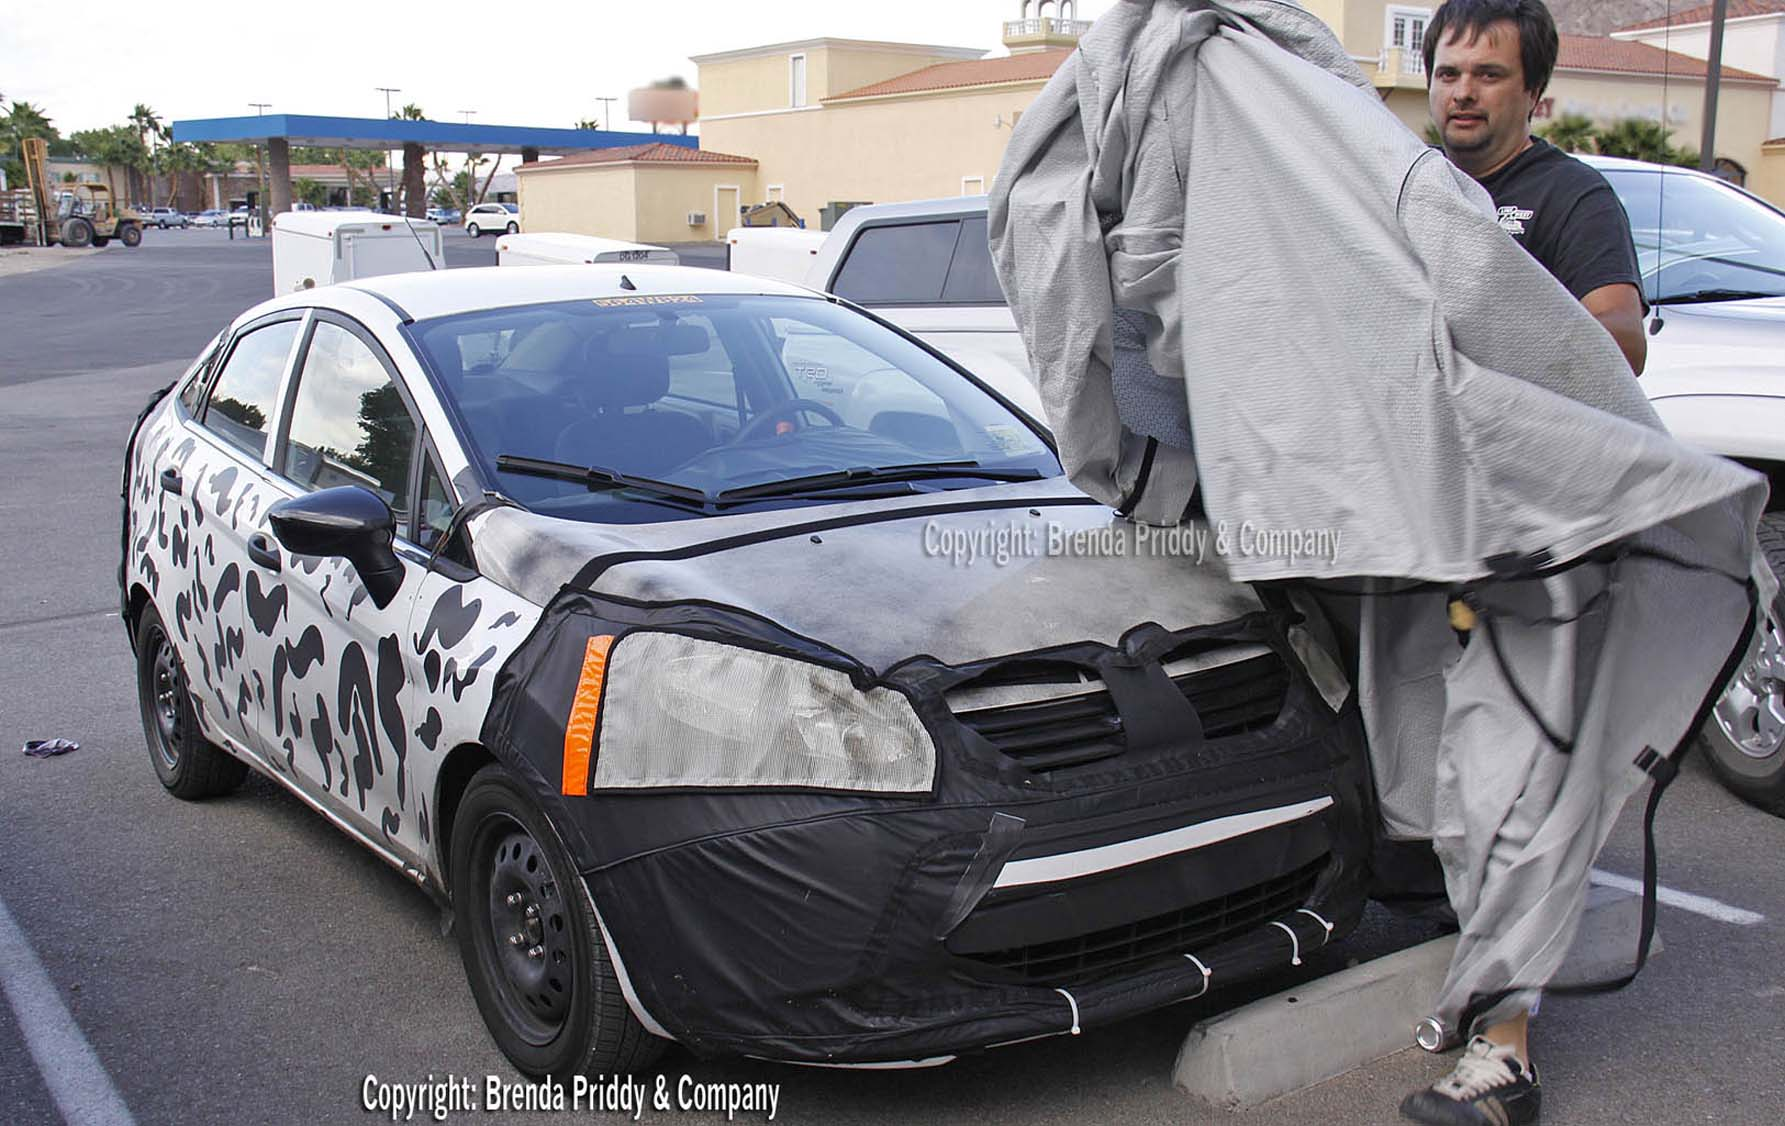 Spy Shots: 2011 (U.S. spec) Ford Fiesta Sedan